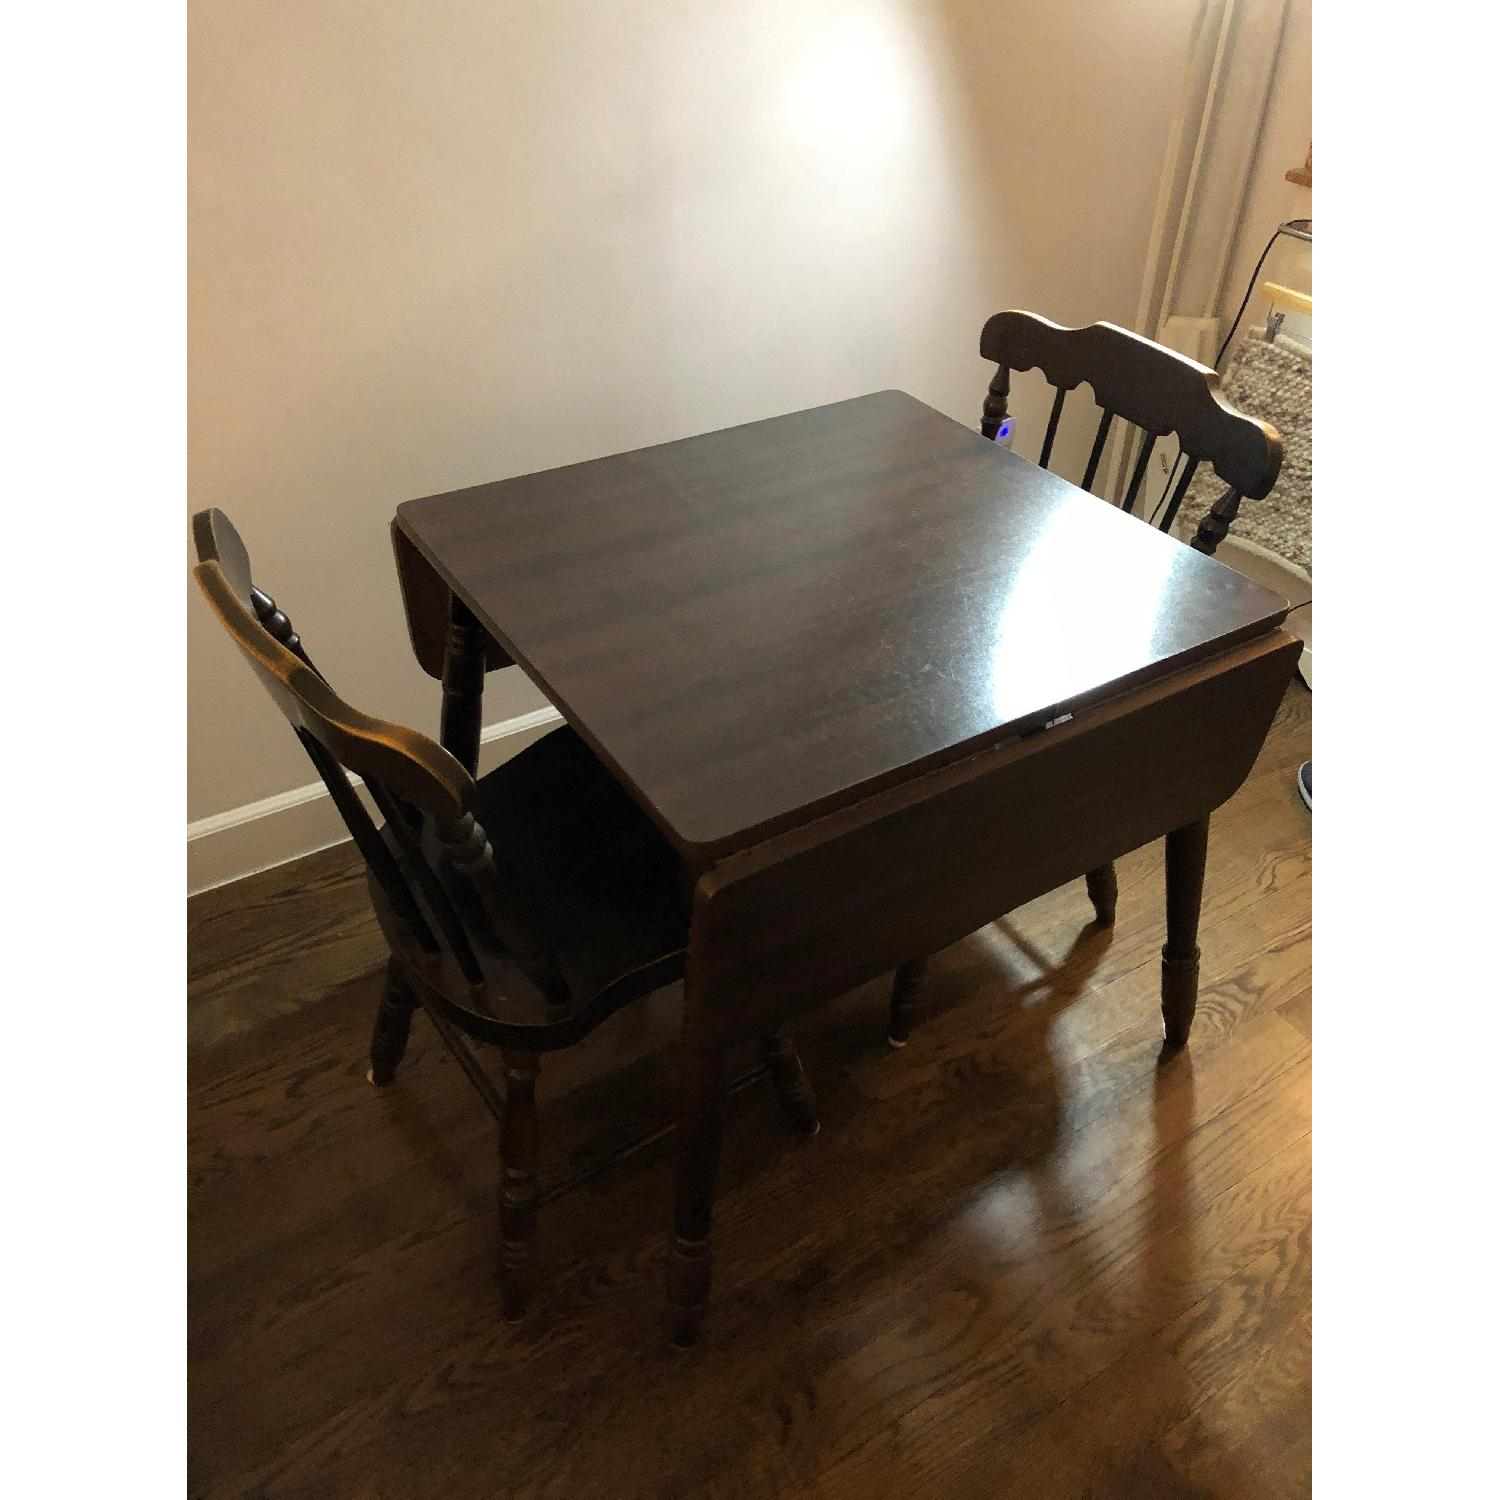 Wood Drop-Leaf Dining Table w/ 2 Chairs-2